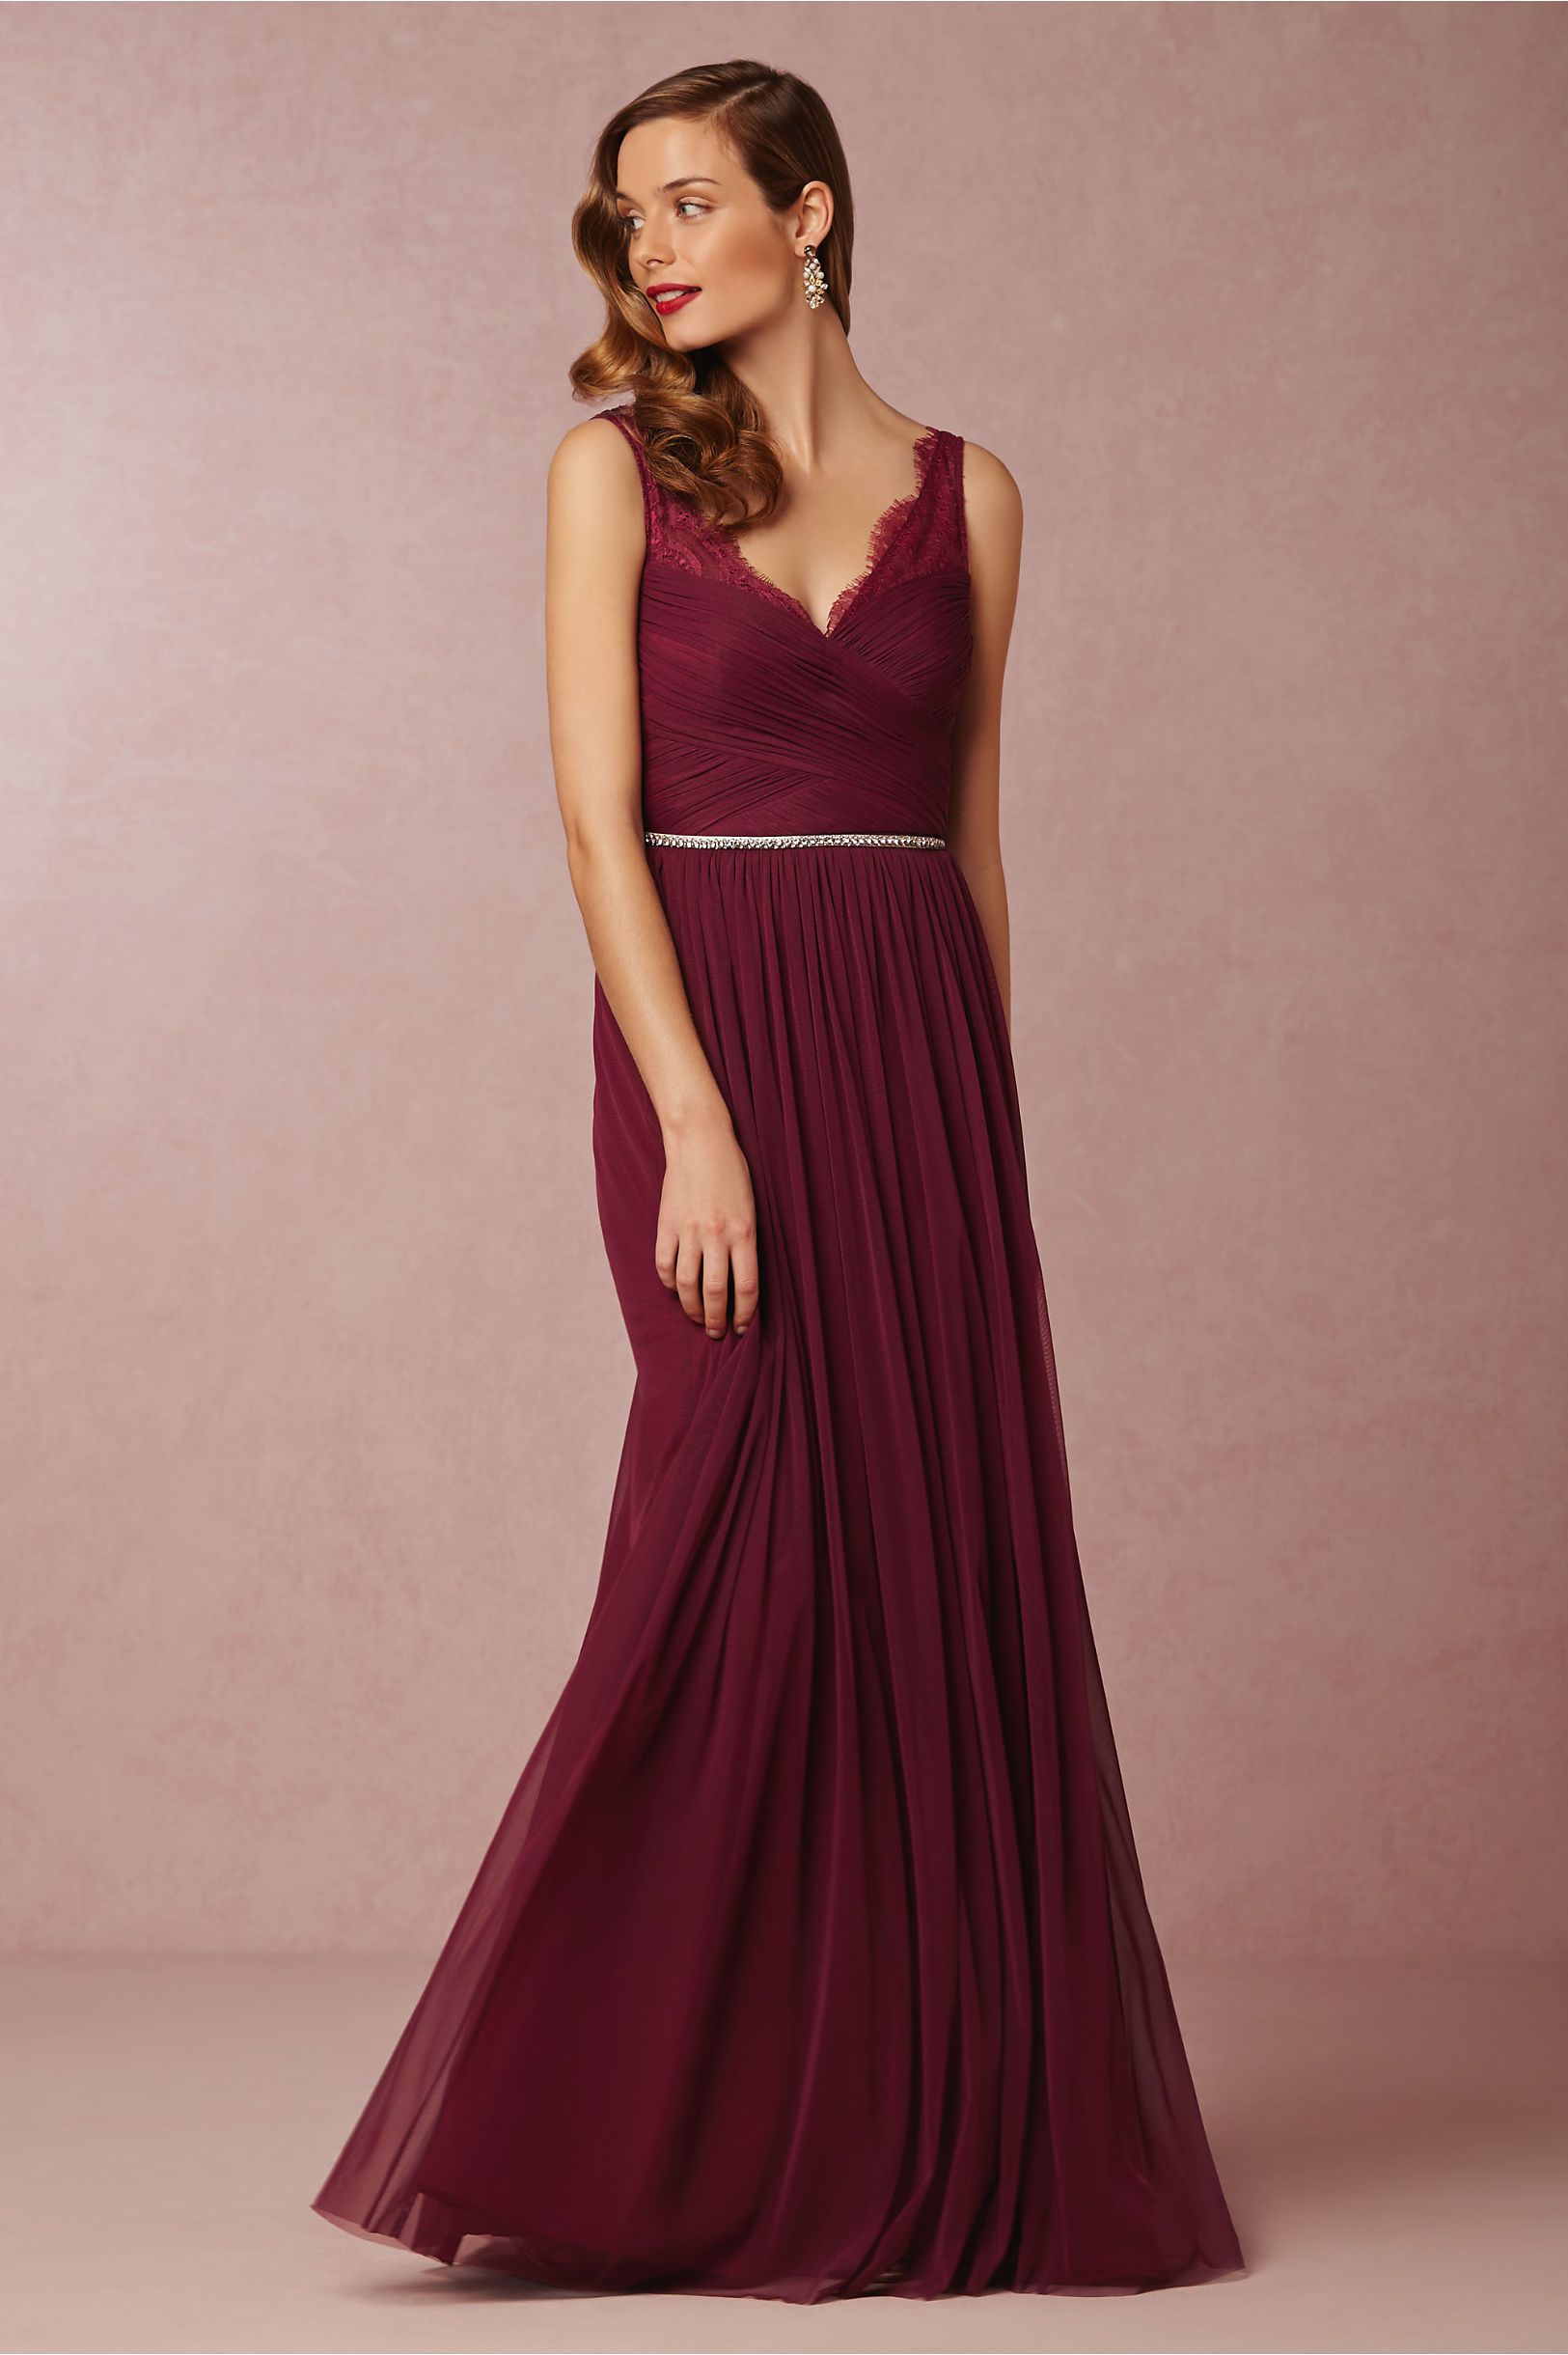 f48633713 Fleur Bridesmaids Dress in black cherry from  BHLDN